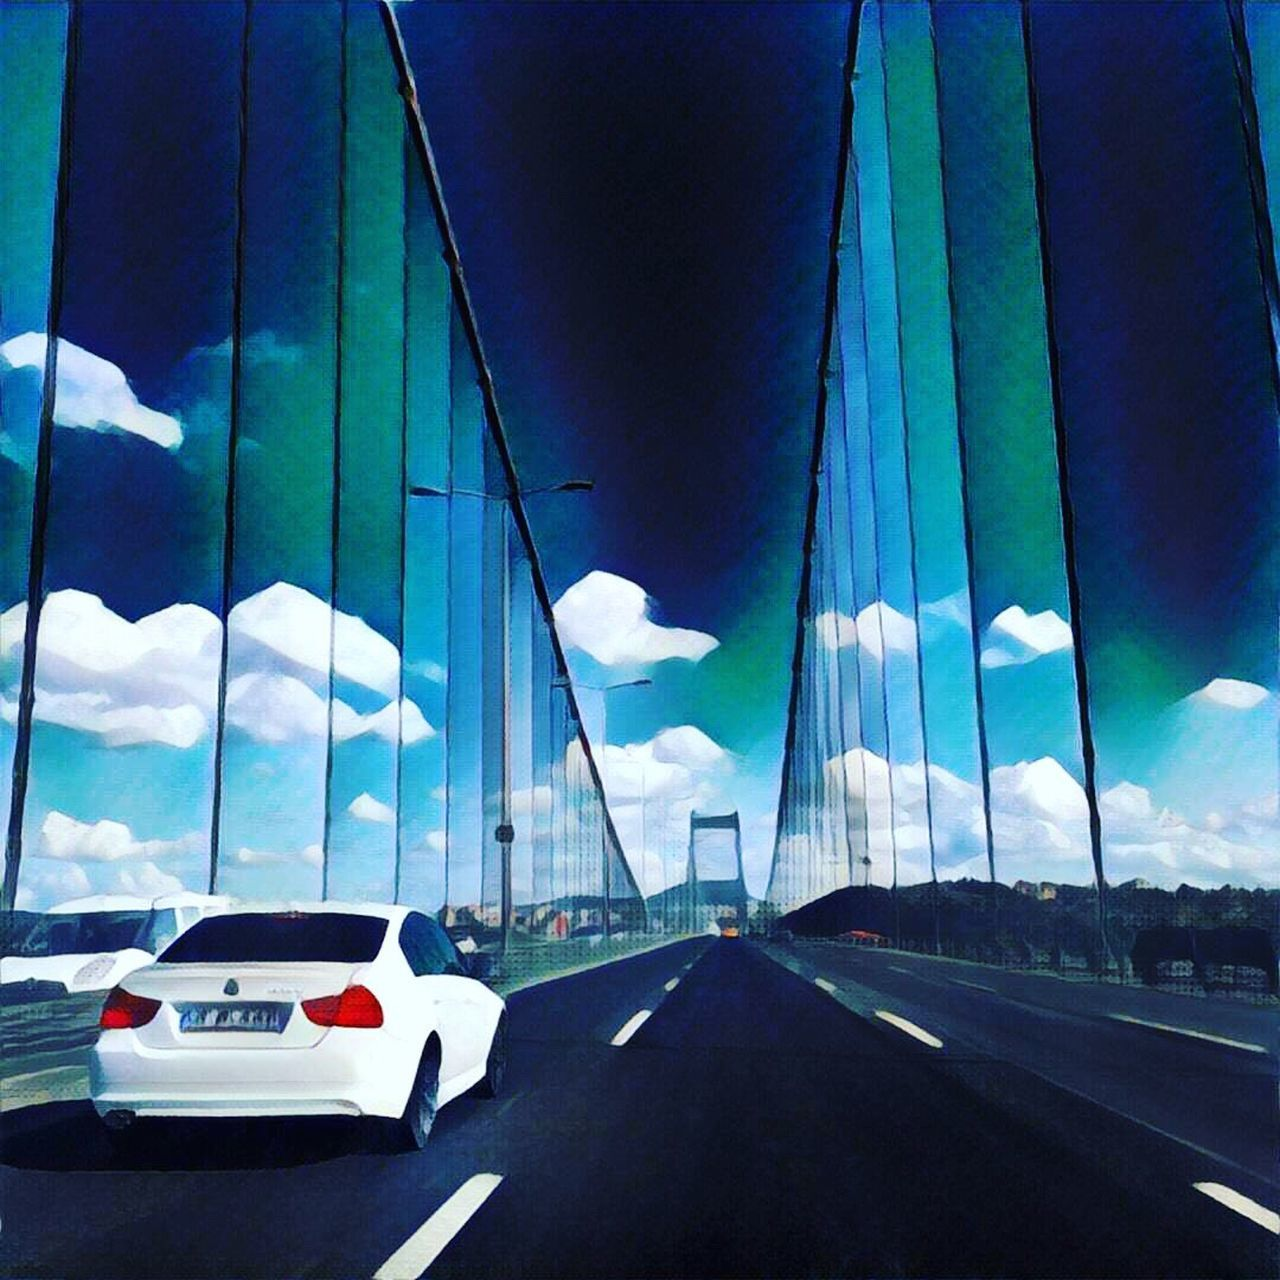 Bridge Invisible Wall Digital Art Digital Painting Invisible Tunnel Light Tube Light Tunnel Digital Manipulation Car Sky Clouds Cloud Break The Mold